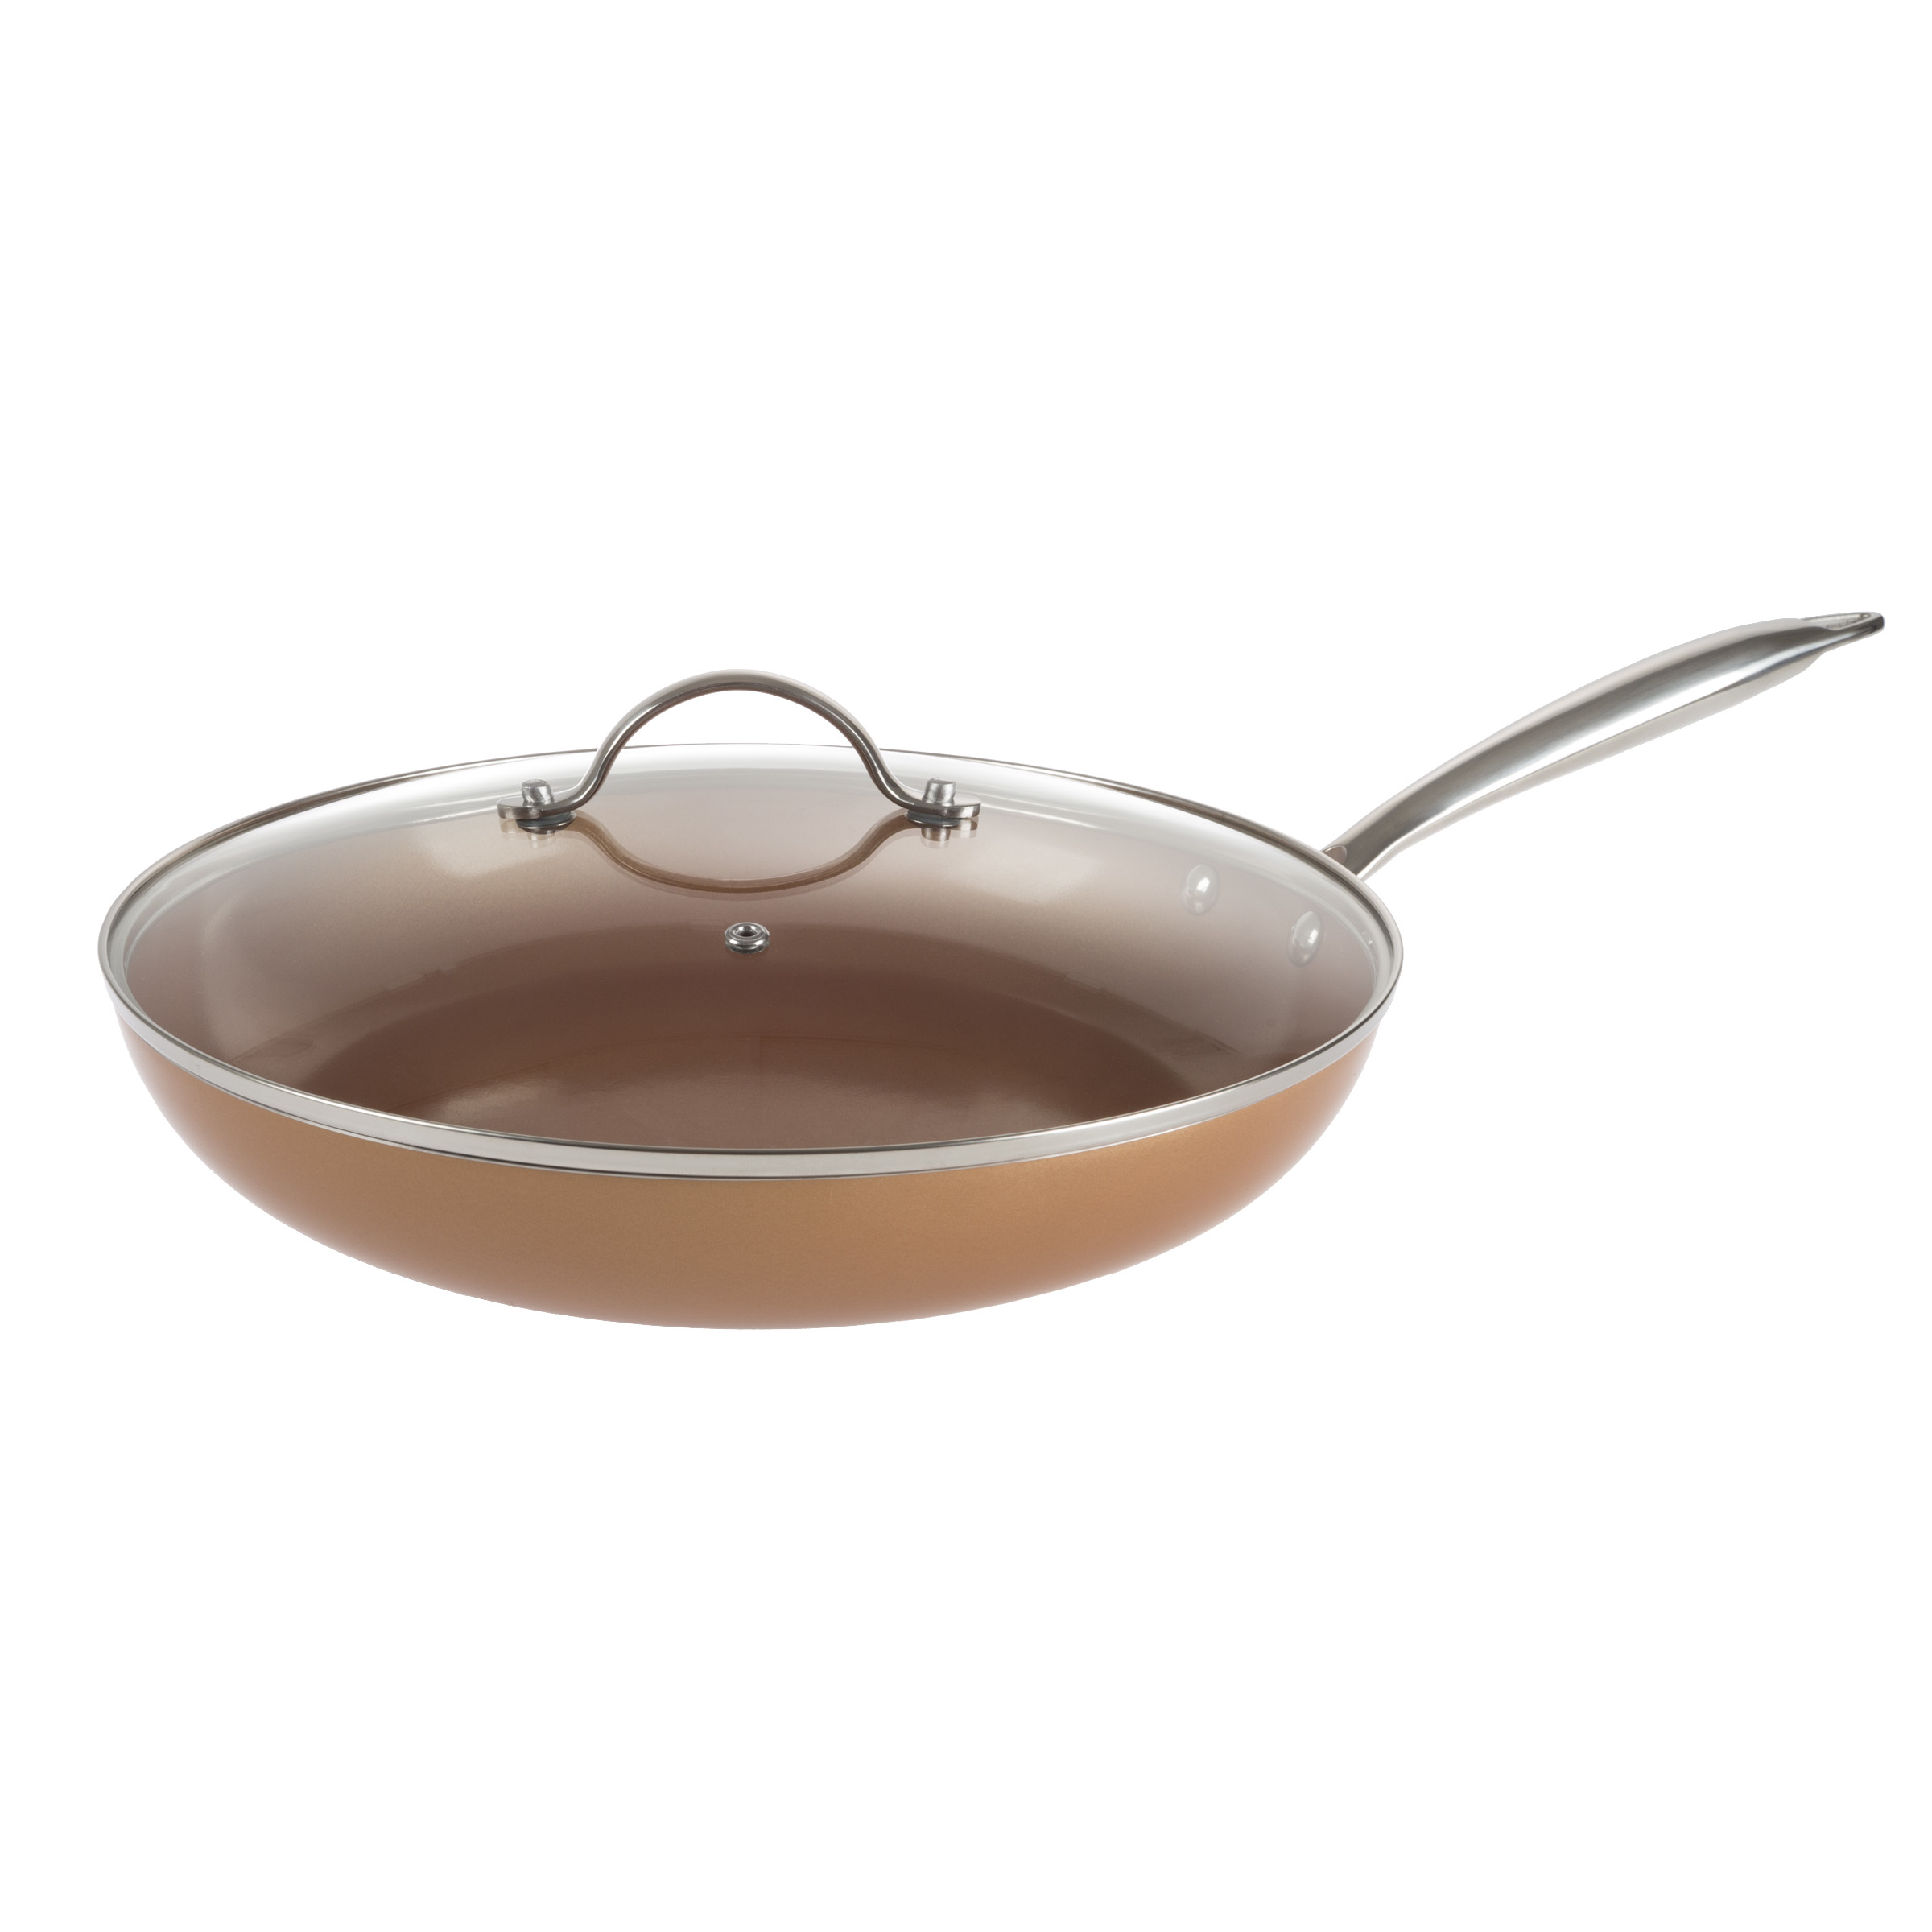 12 Inch Frying Pan with Lid Copper Finish Induction Cooking Oven Stove Top Safe